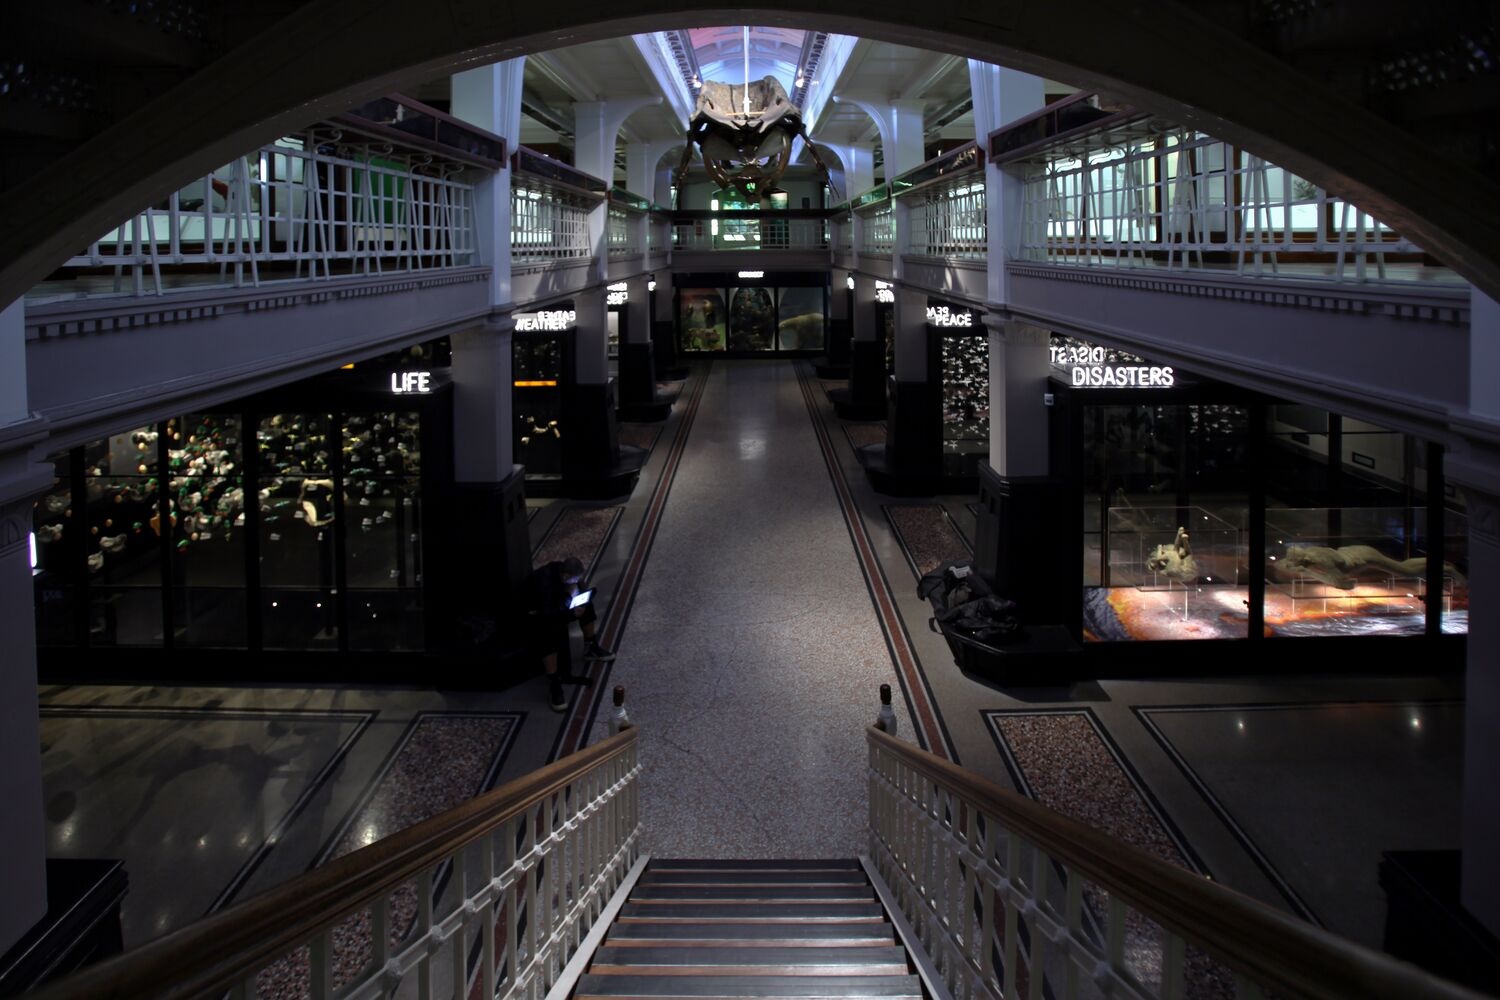 The Manchester Museum Living Gallery